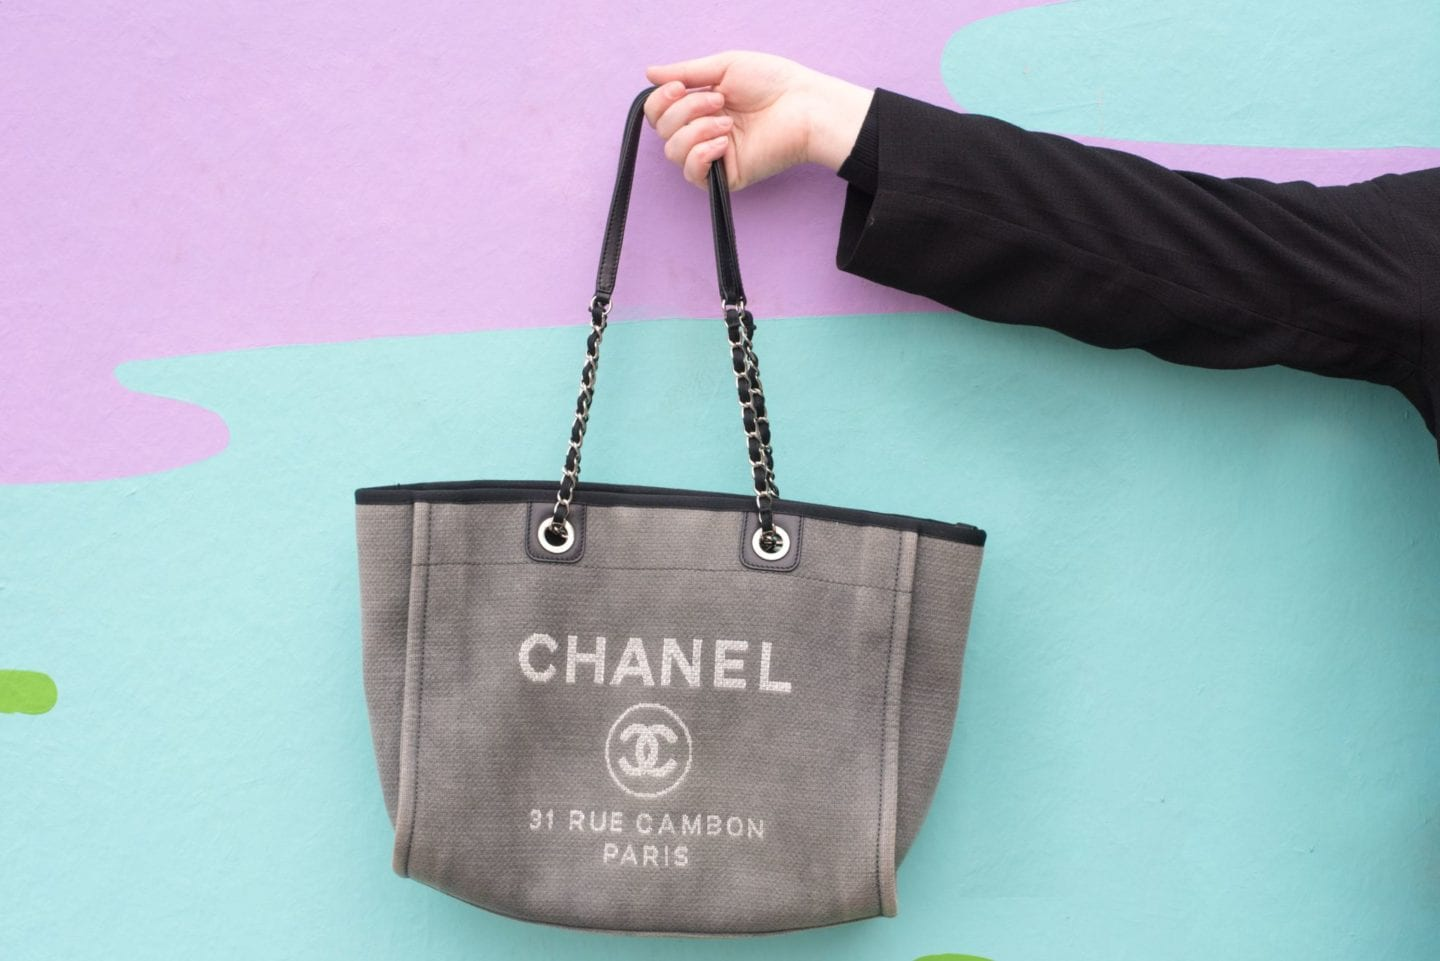 ce55dcf72 My Thoughts On The Chanel Deauville Tote Bag... - Fashion For Lunch.